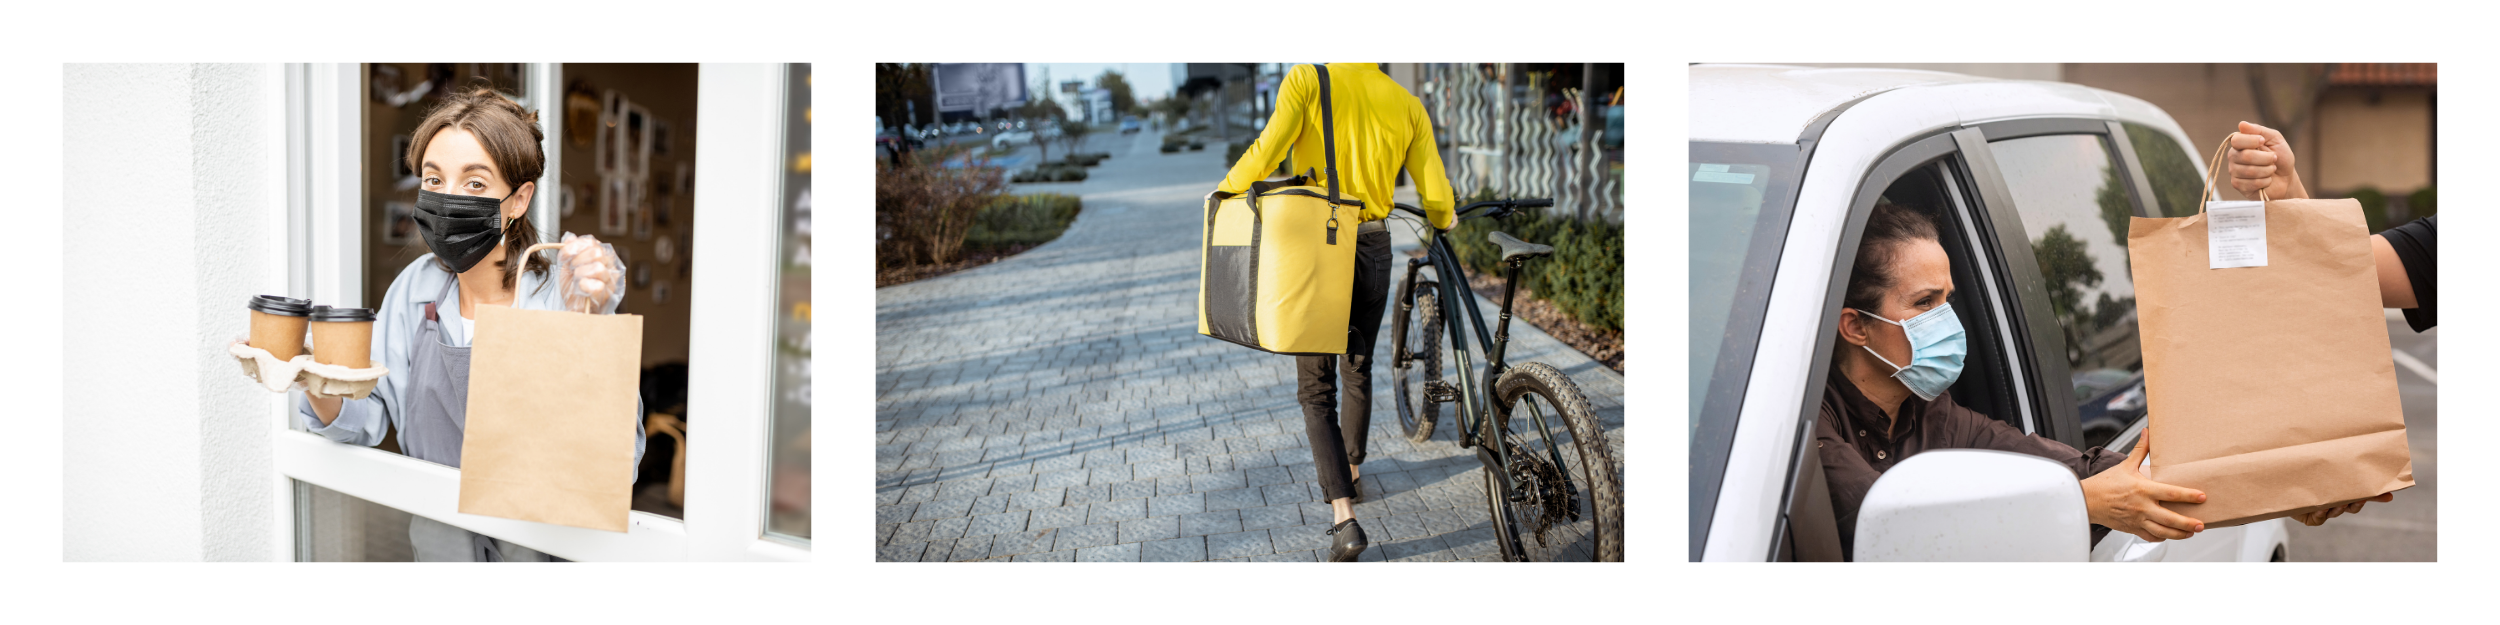 Pick up window, bicycle delivery, curbside pick up